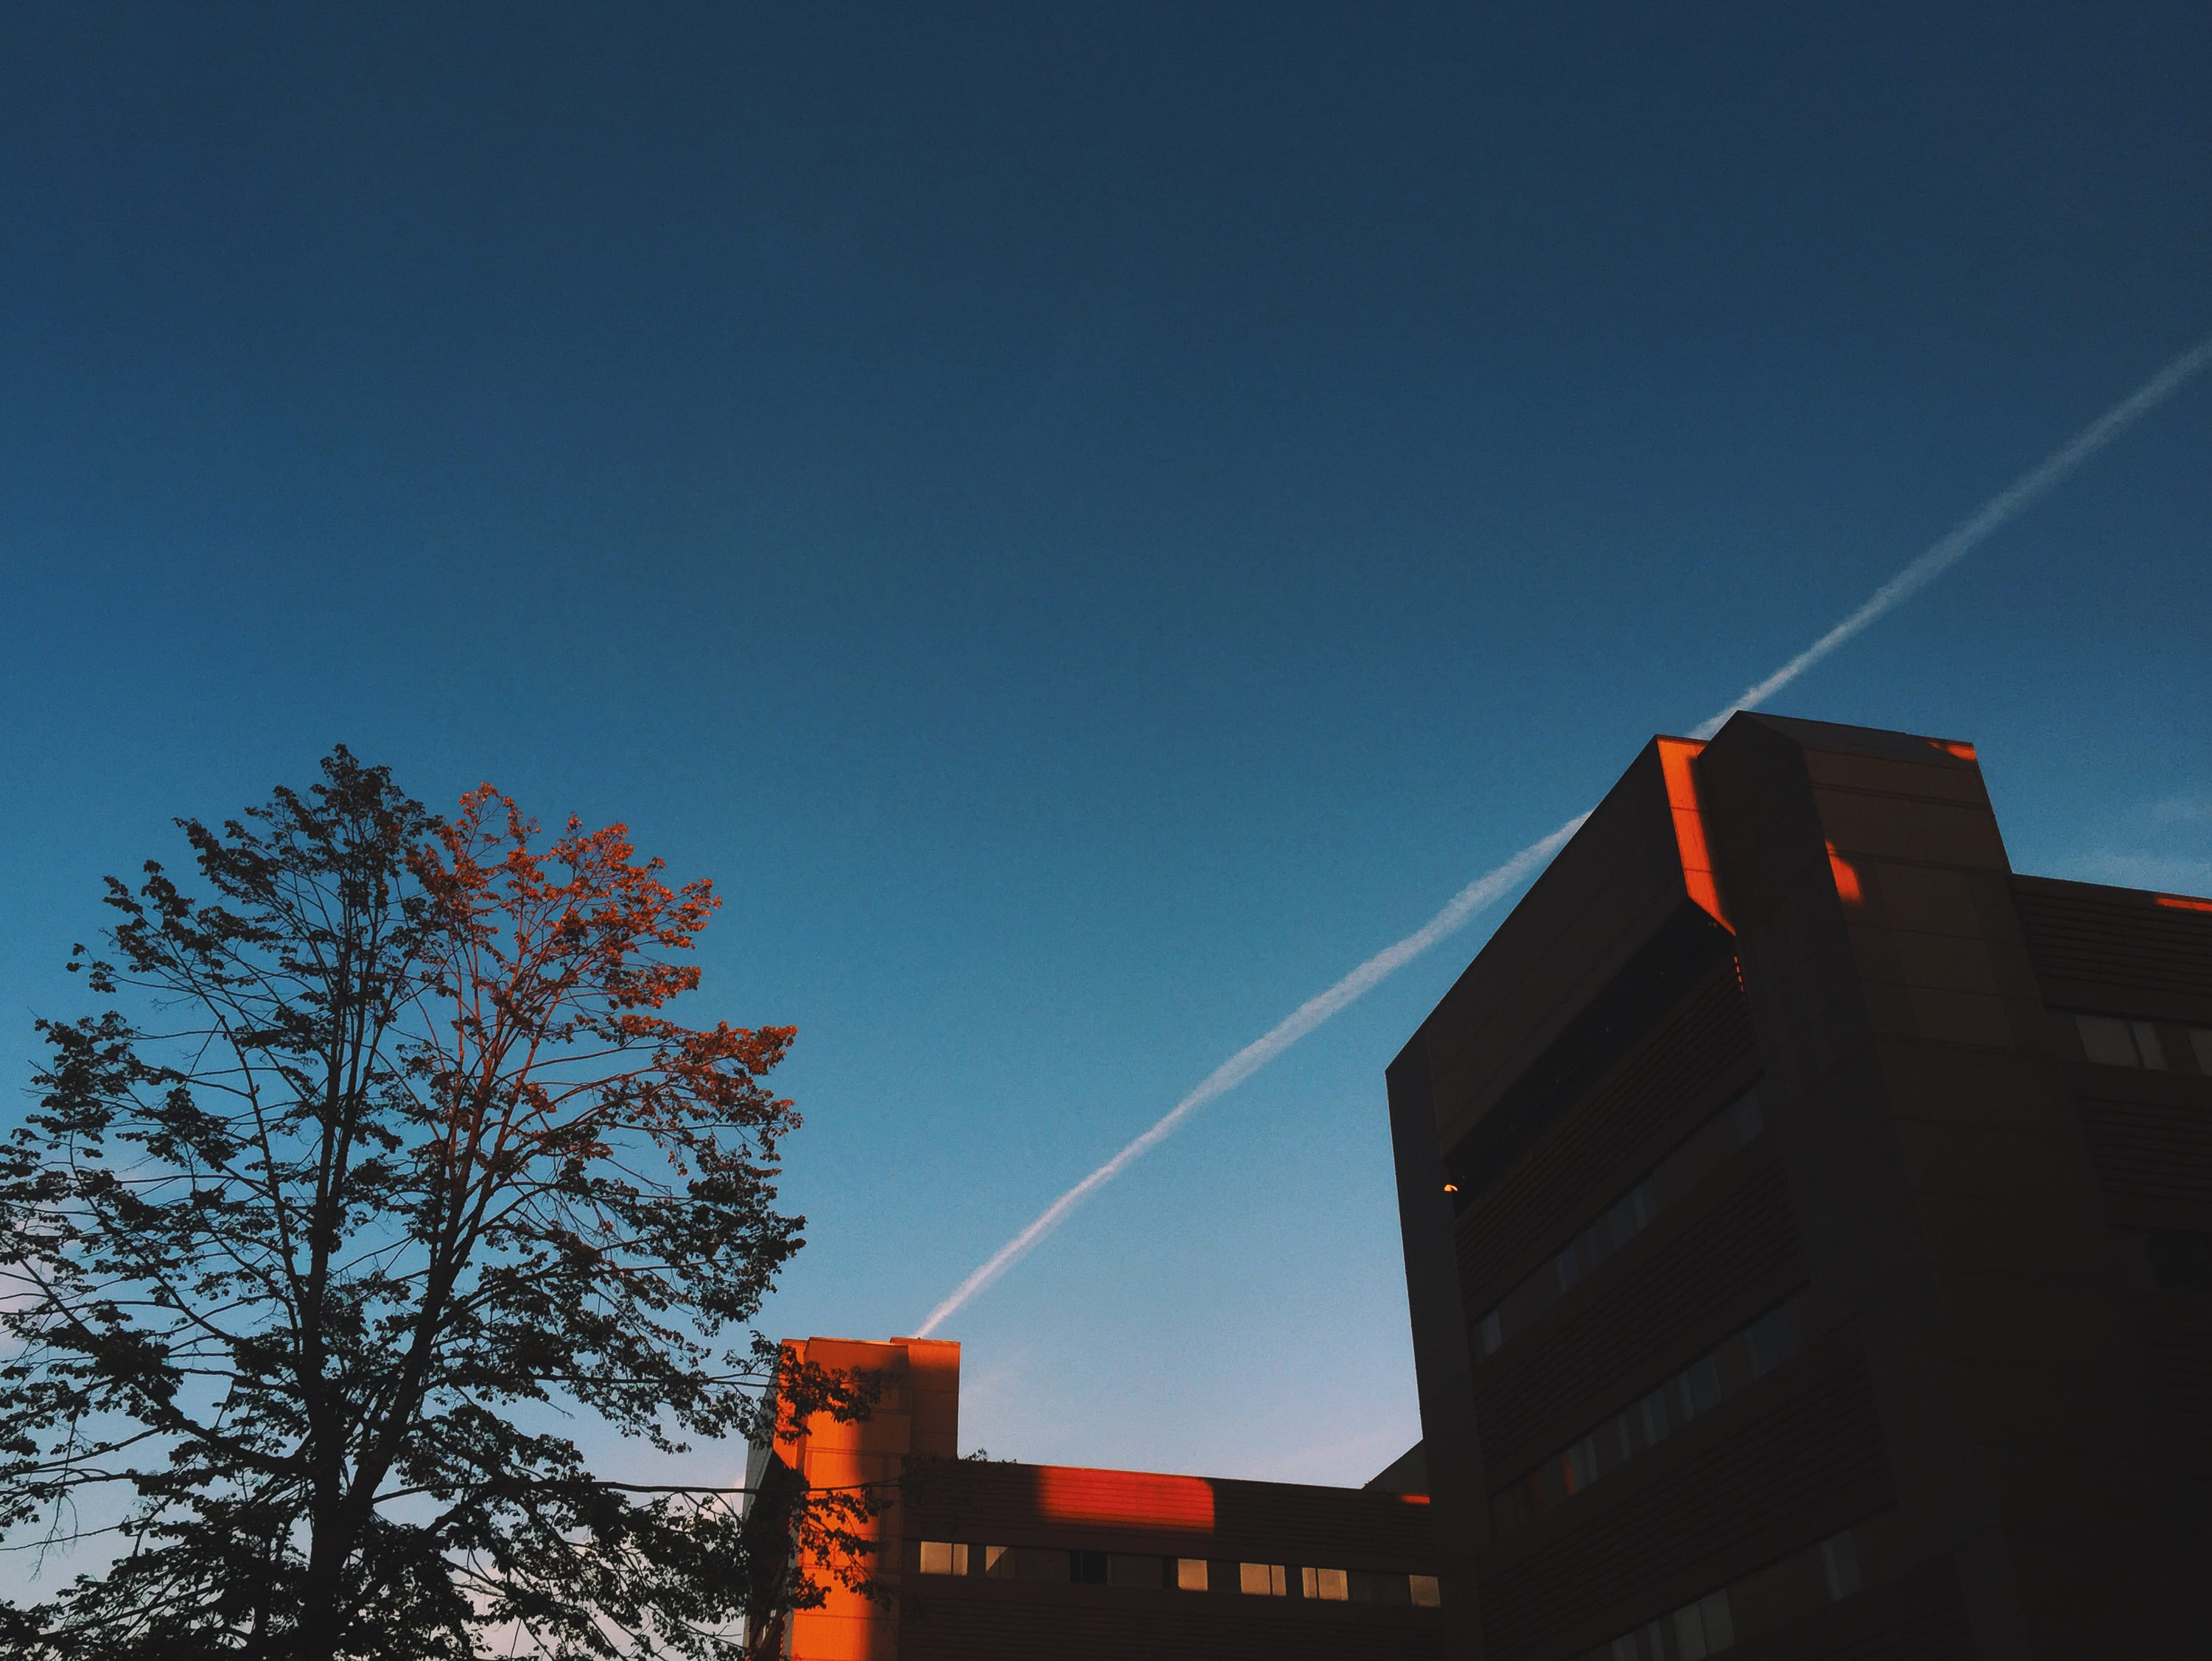 A photograph depicting Red Hospital Highlights at Dusk